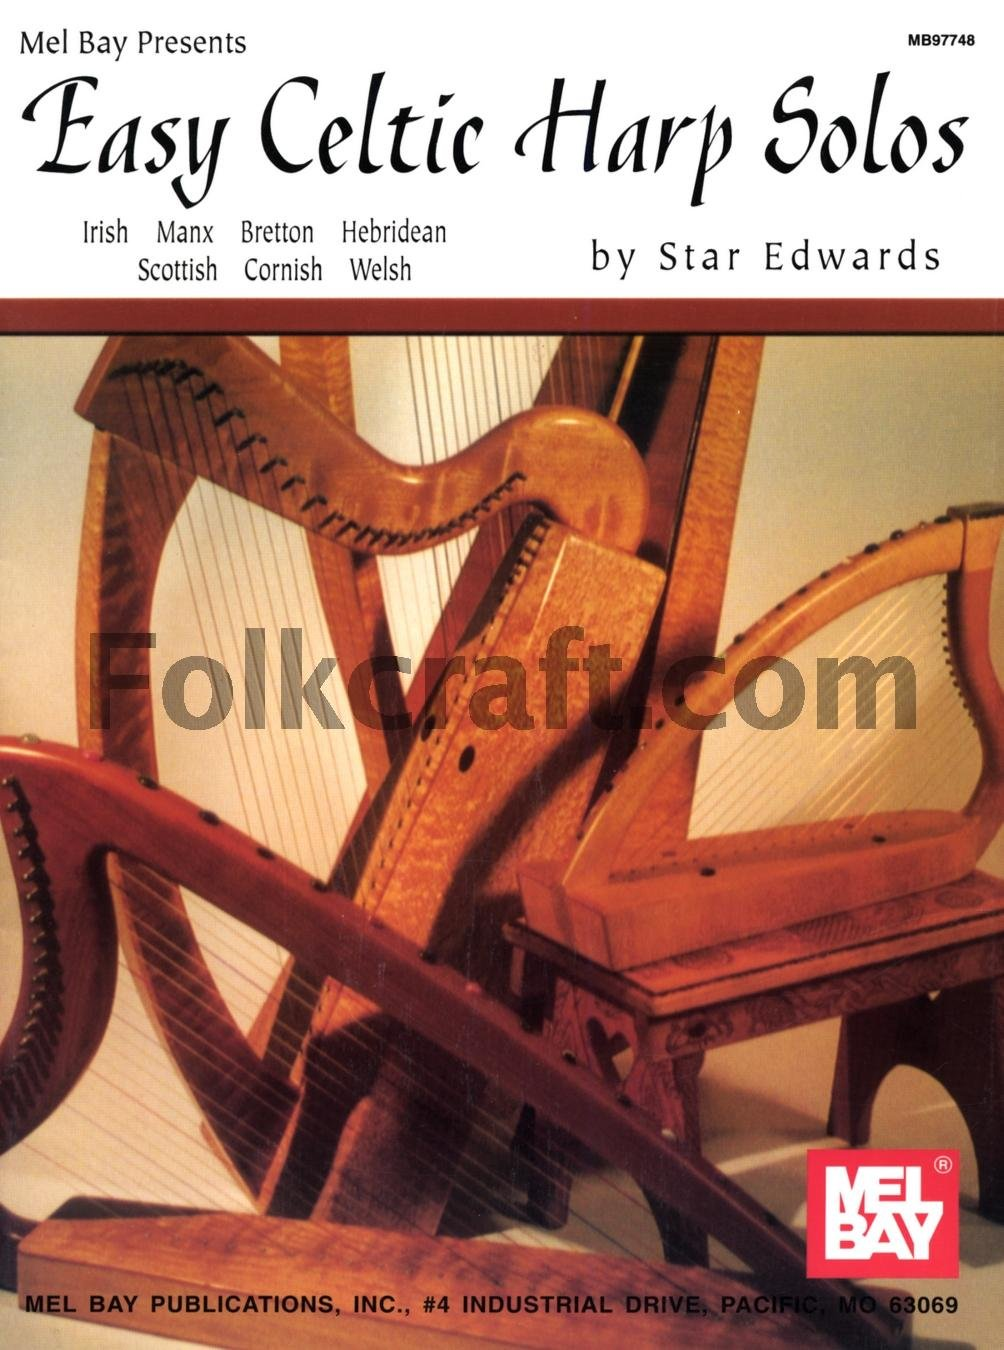 Easy Celtic Harp Solos Mel Bay Publications